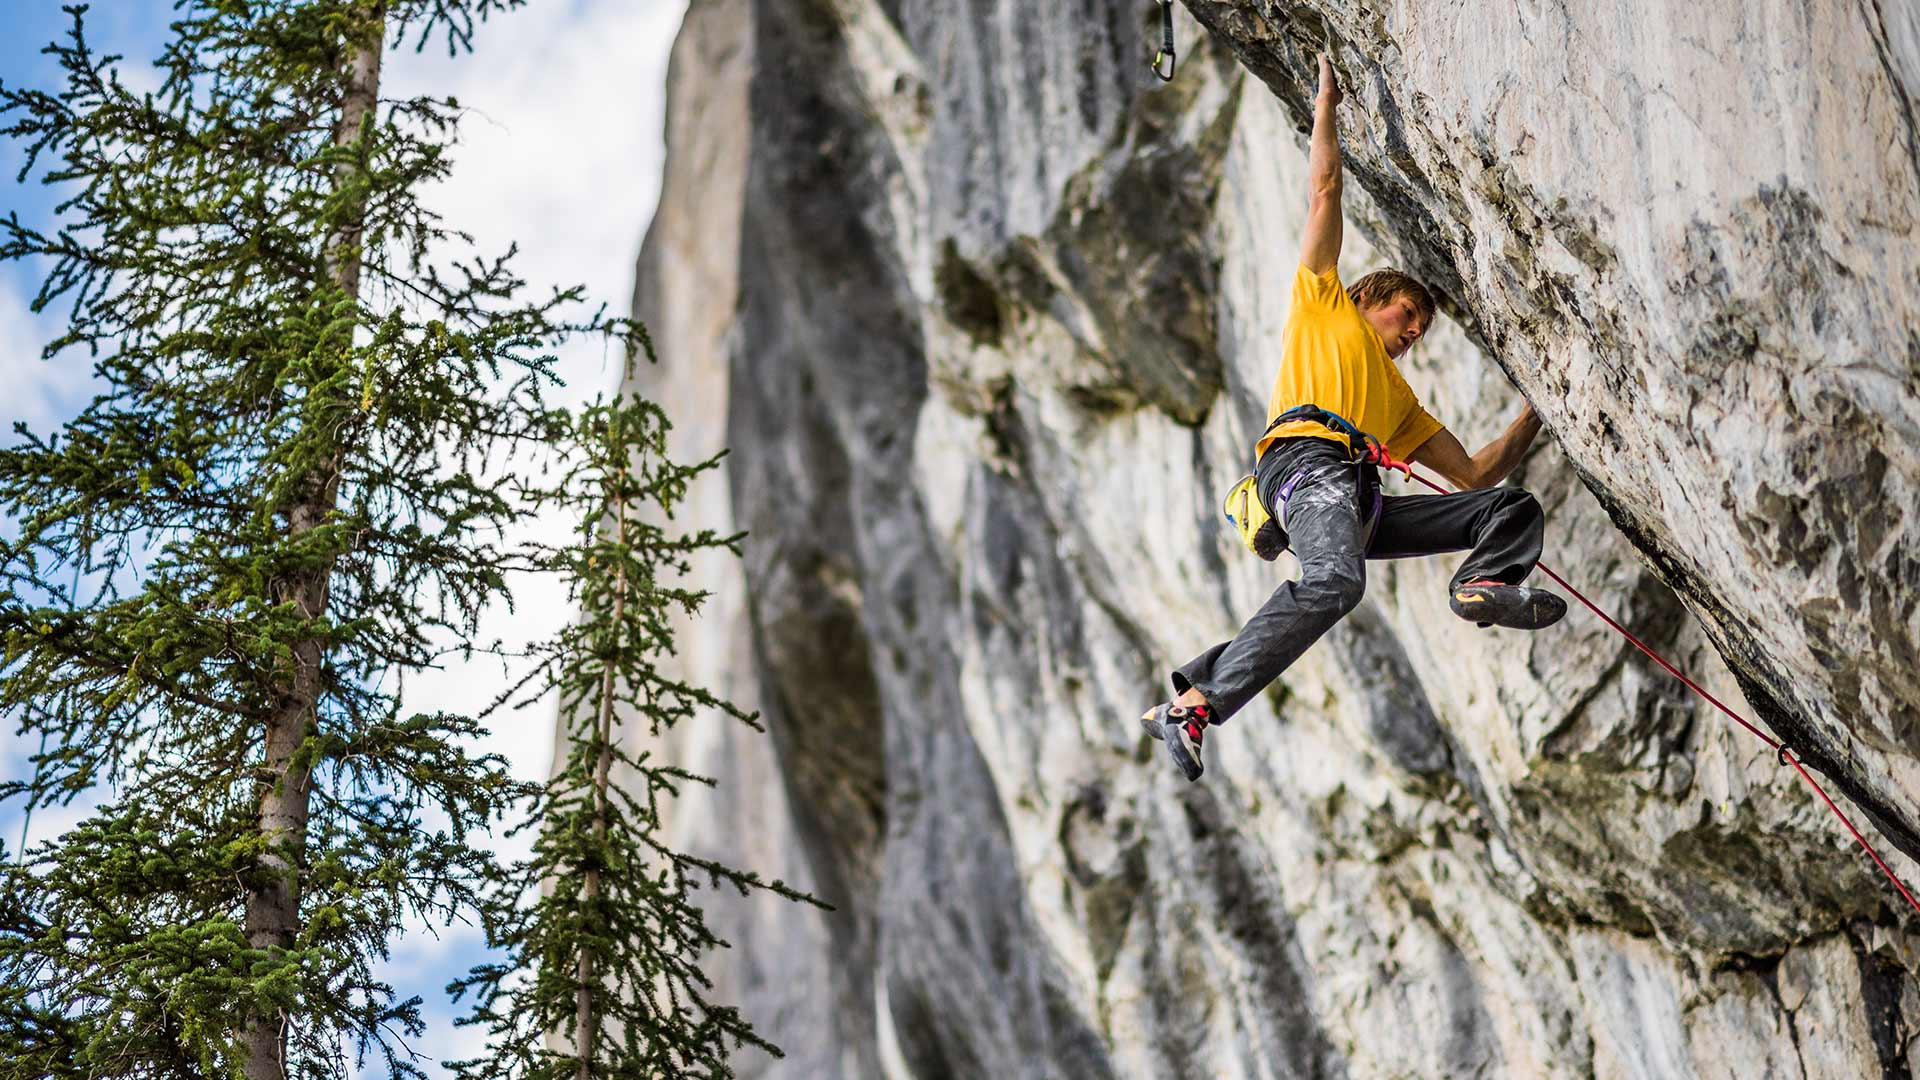 Alex Megos becomes the sole member to date of Fightclub (5.15b), Canada's hardest route. Alberta, Canada. KEN ETZEL